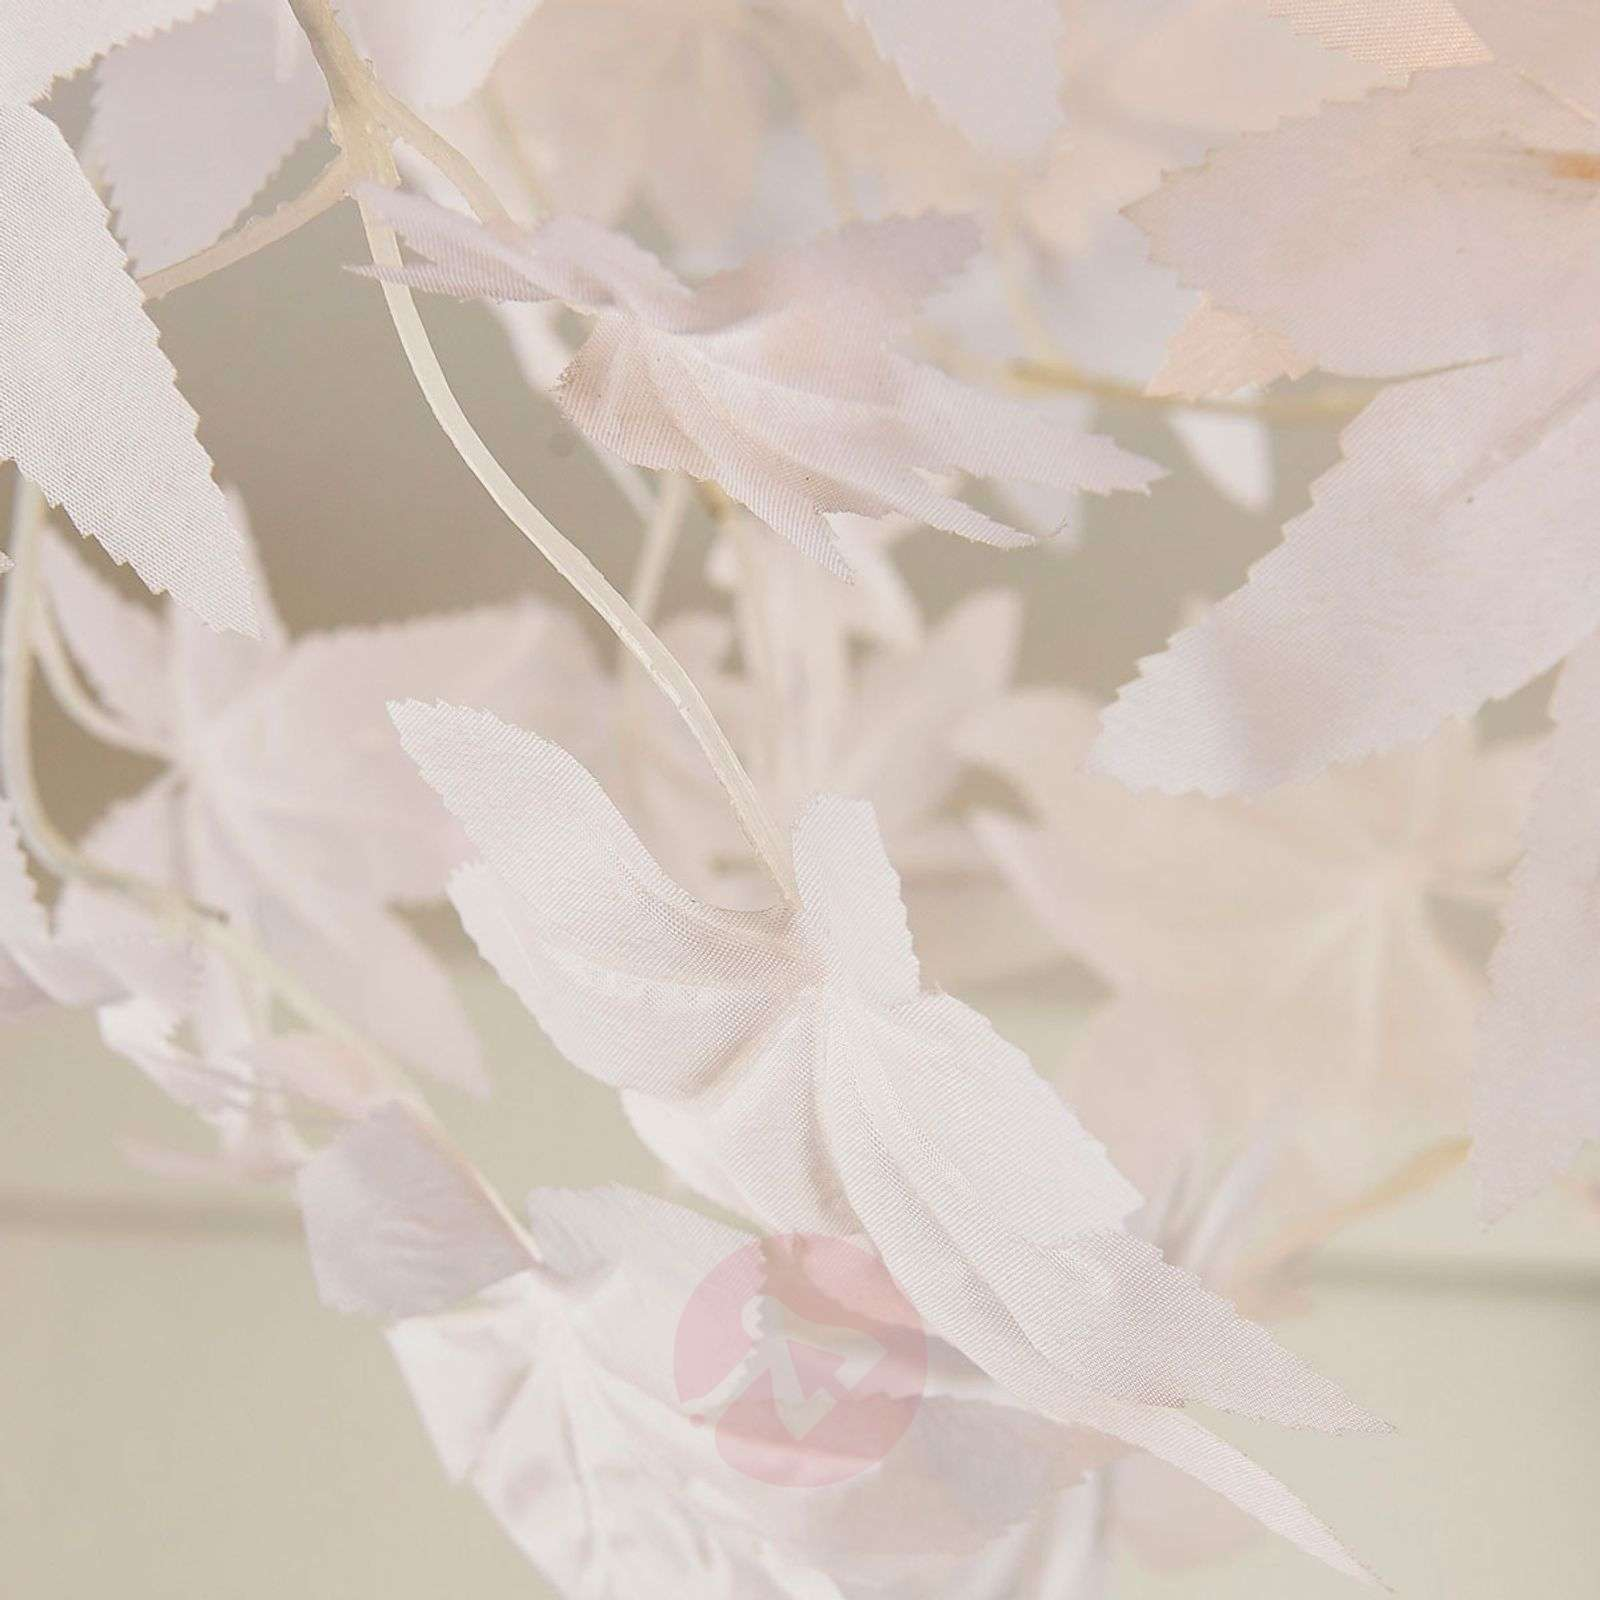 Maple ceiling light with pretty leaf decoration-9621122-011